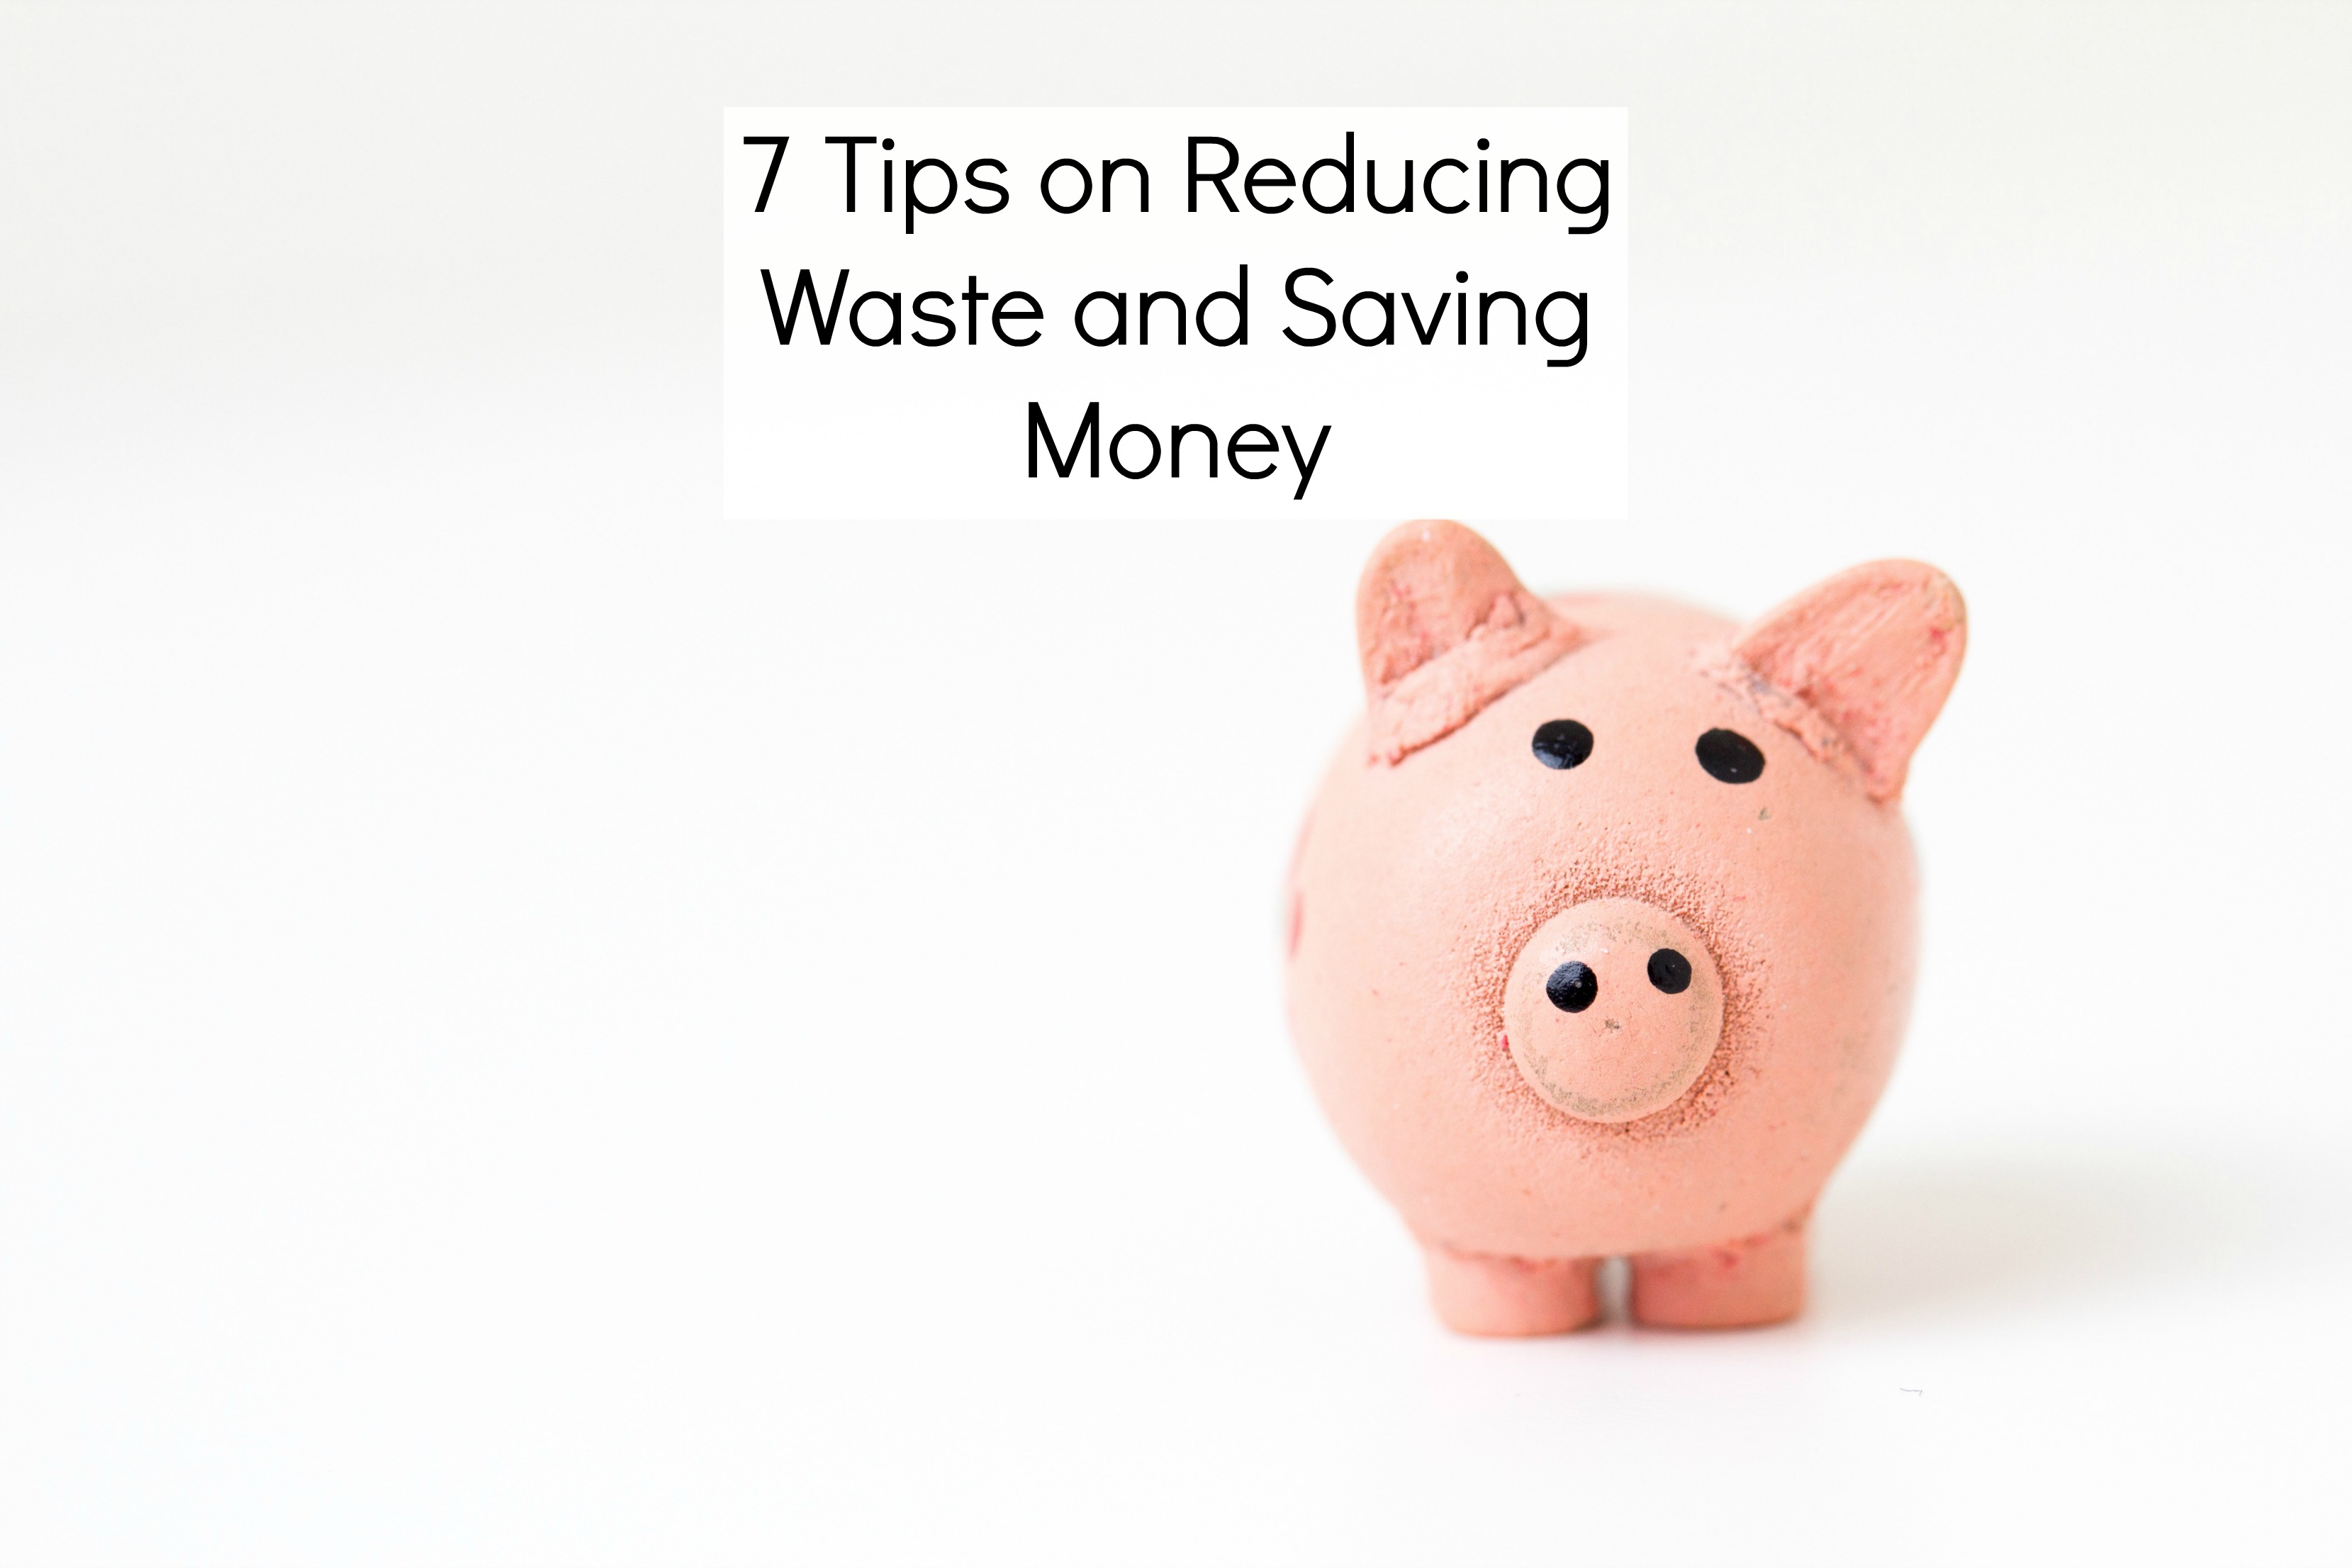 7 Tips on Reducing Waste and Saving Money